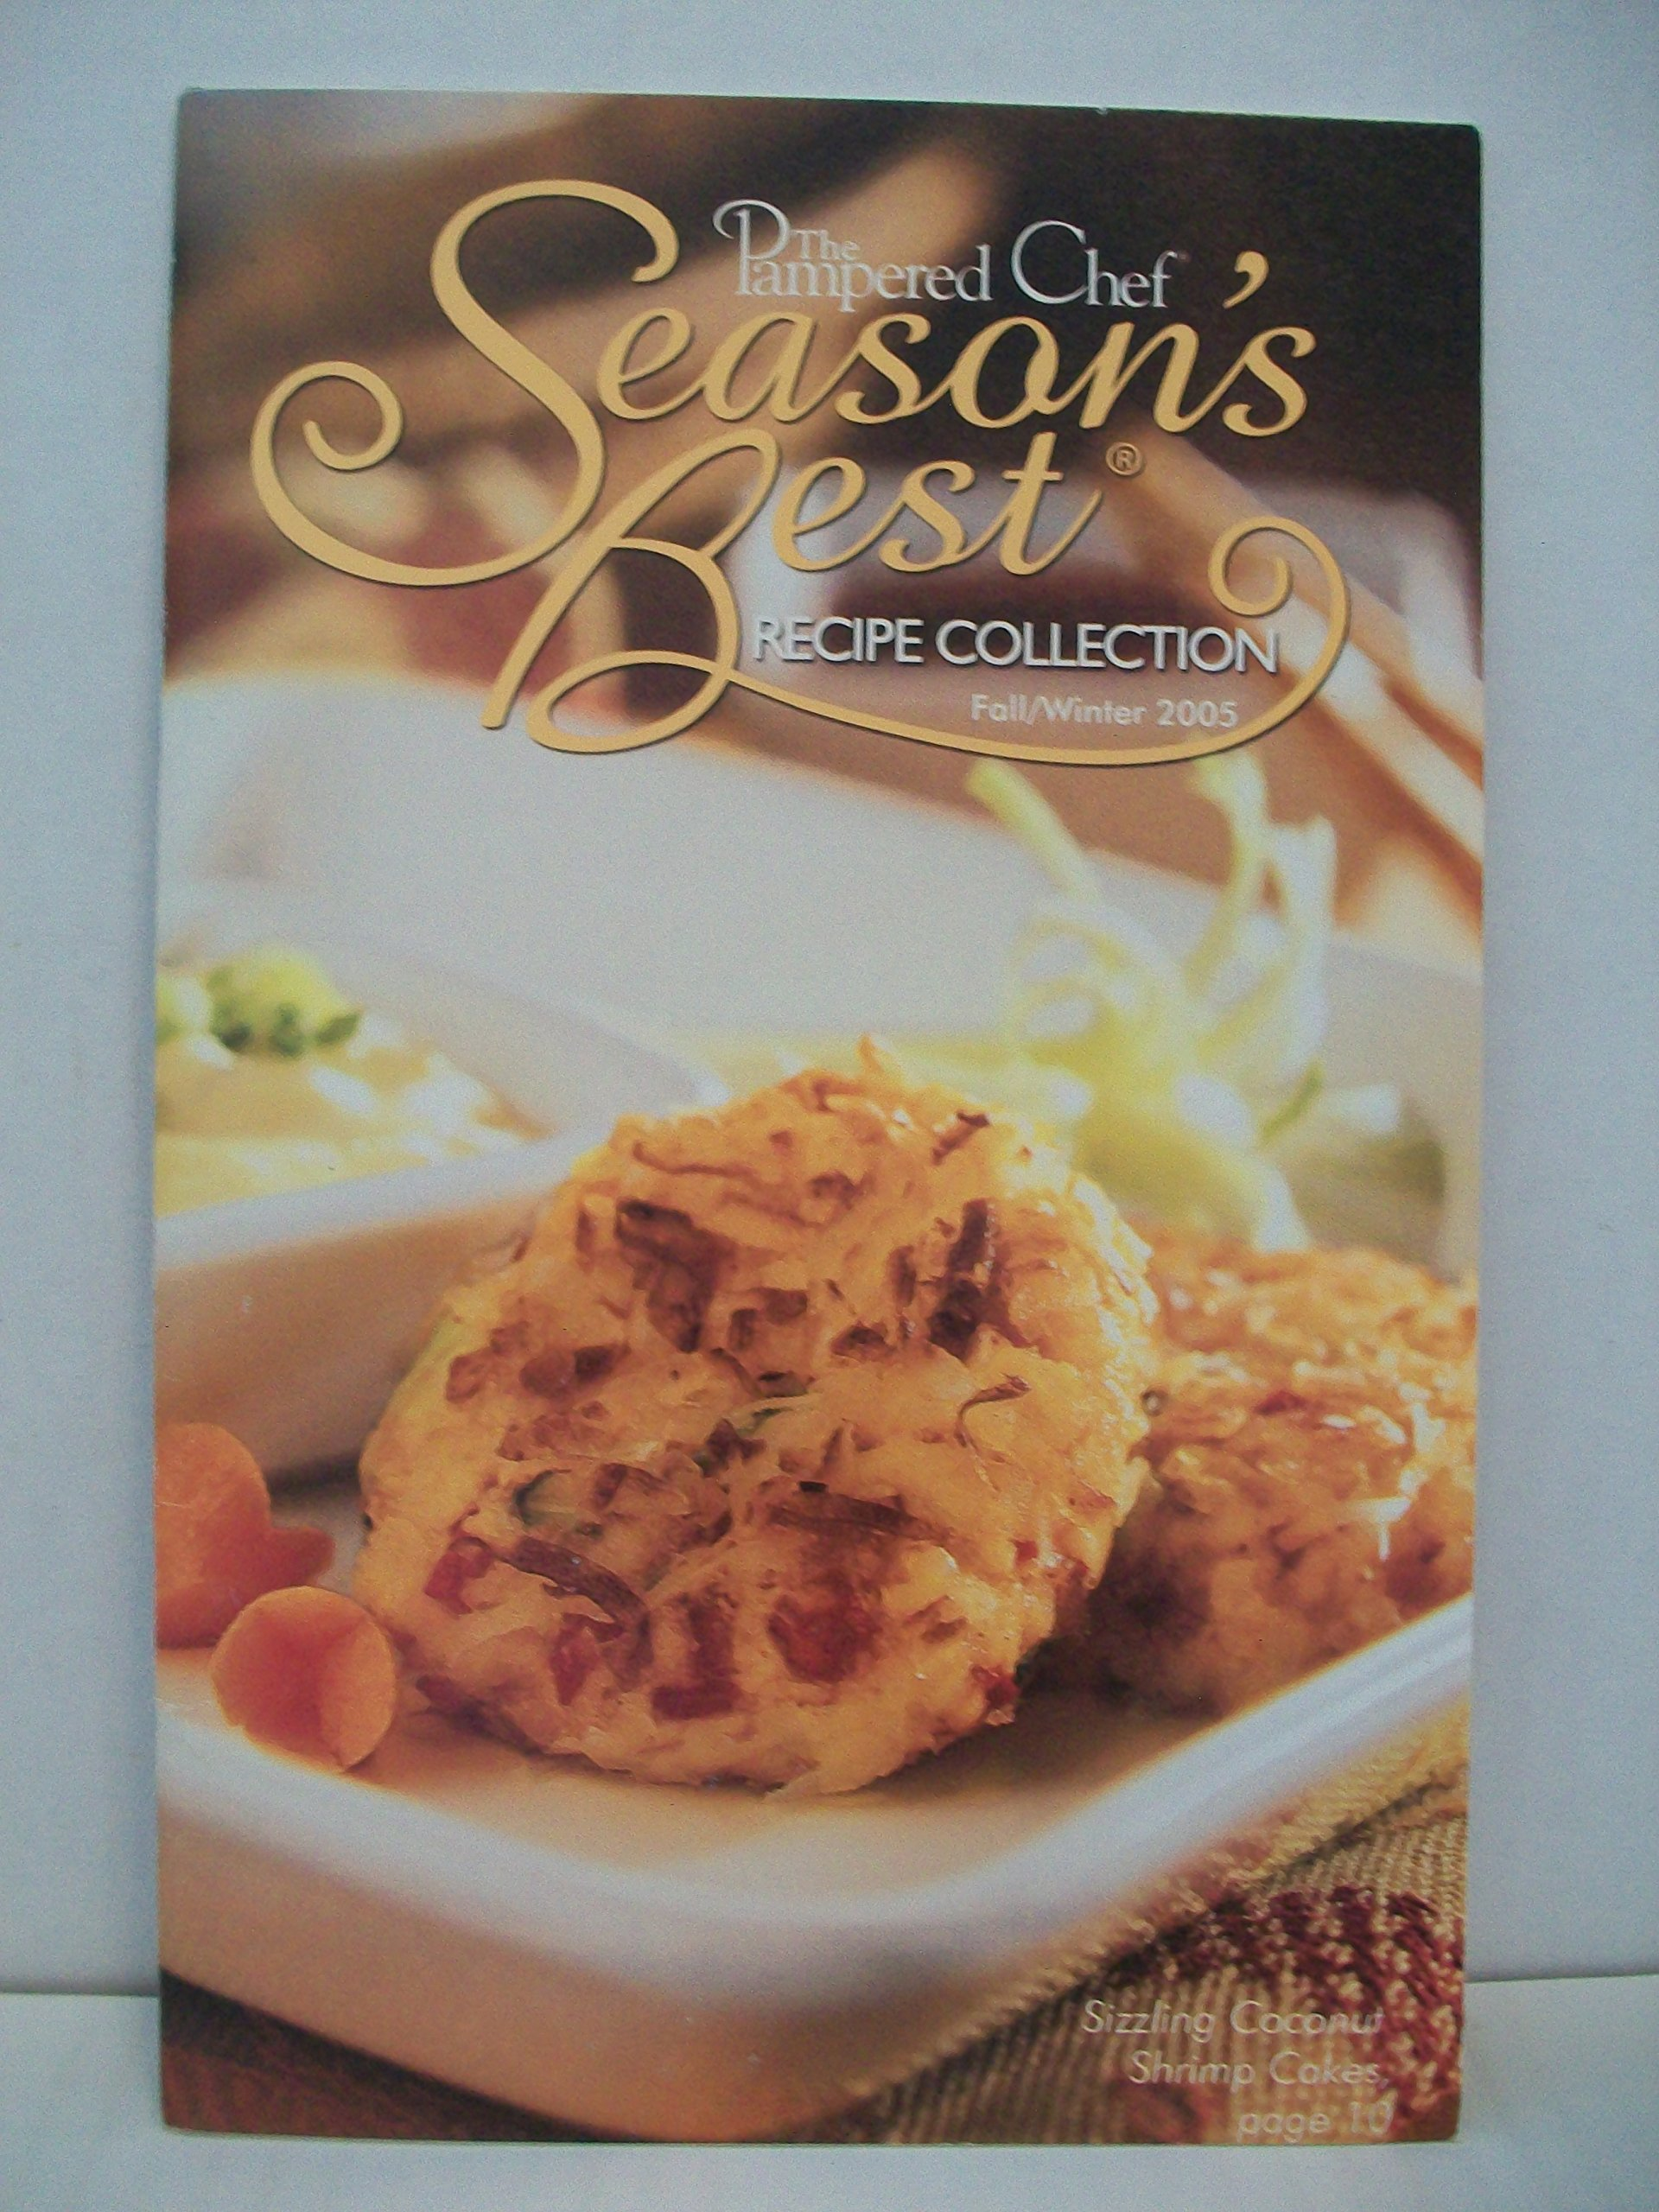 The Pampered Chef Season's Best Recipe Collection (Fall/Winter 2005) pdf